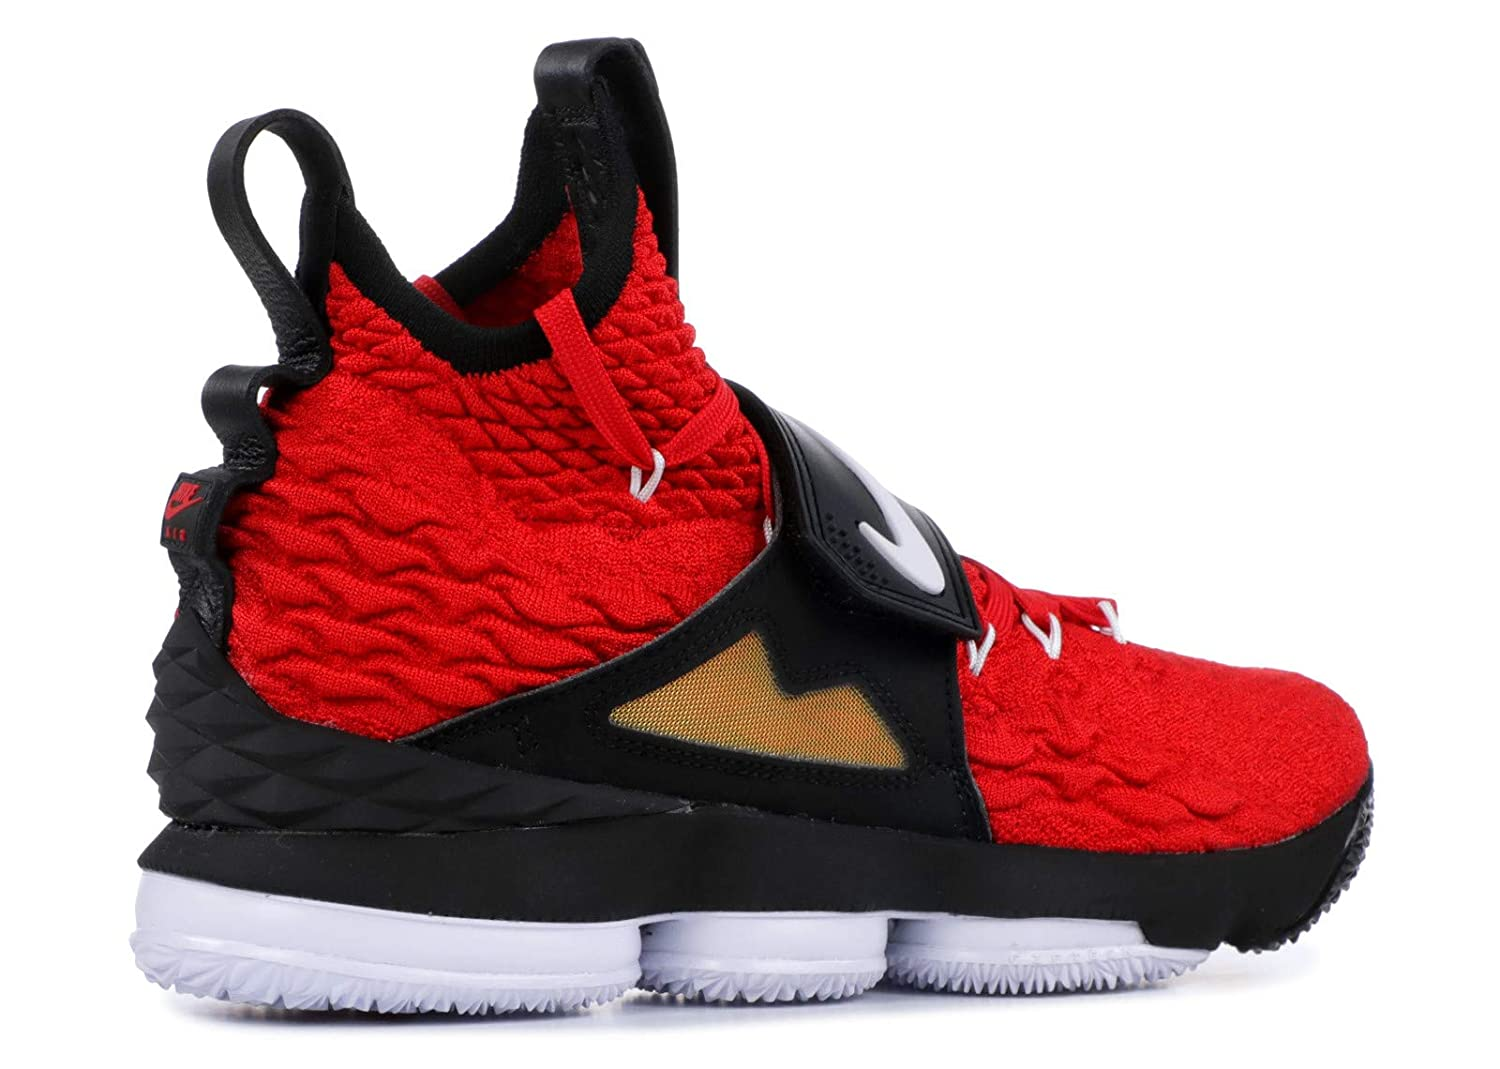 competitive price a944b 5d1ec Nike Lebron 15 XV Red Diamond Turf Prime Deion Sanders Size 10.5 AO9144-600